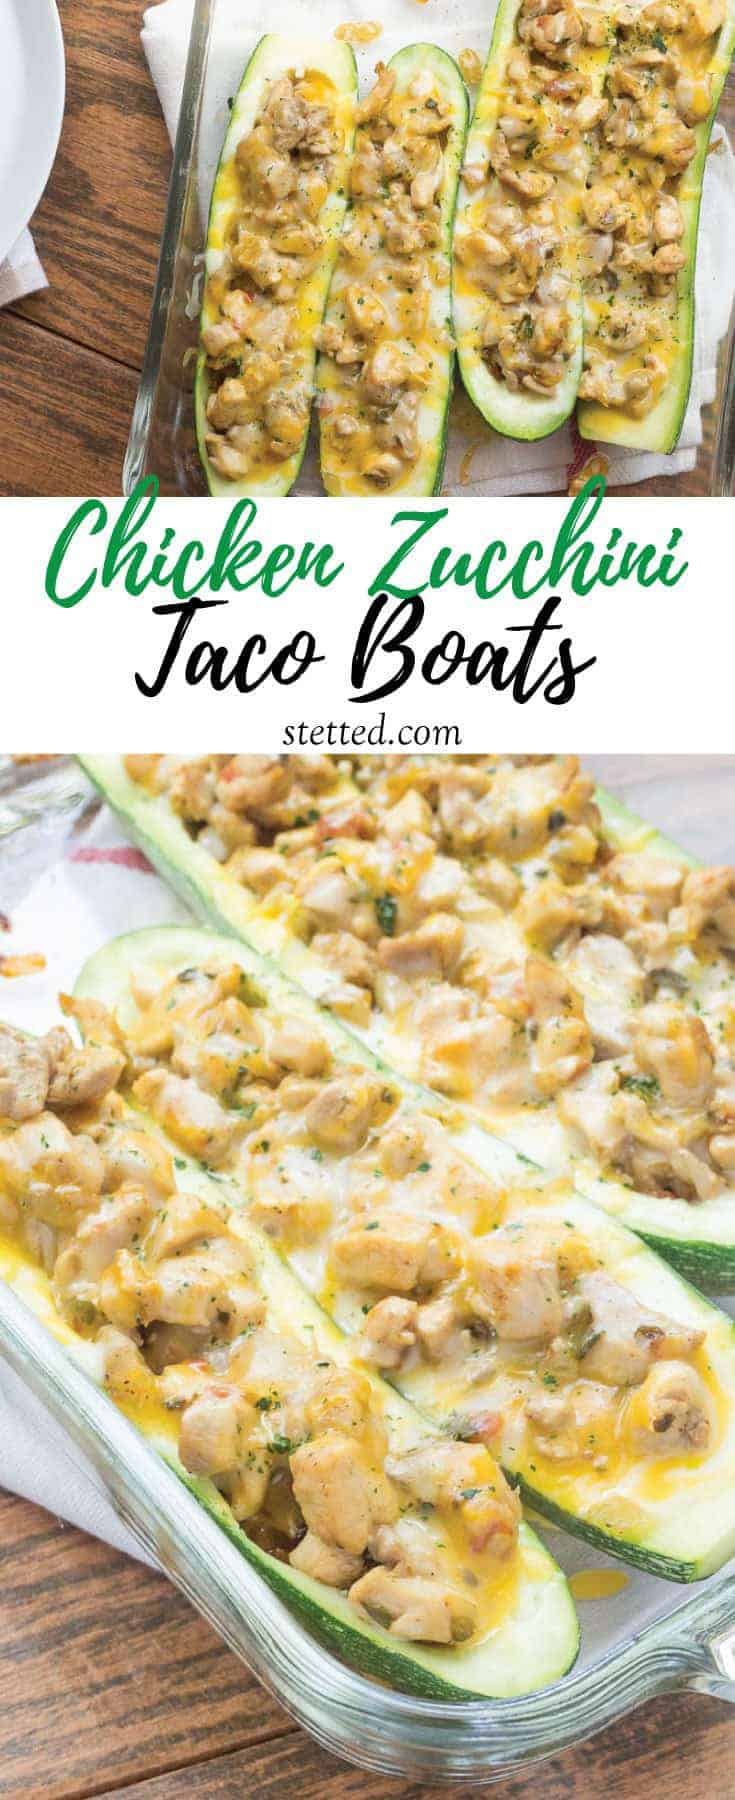 Zucchini Taco Boats with Chicken are a light and simple dinner. They're a great way to get your veggies in!